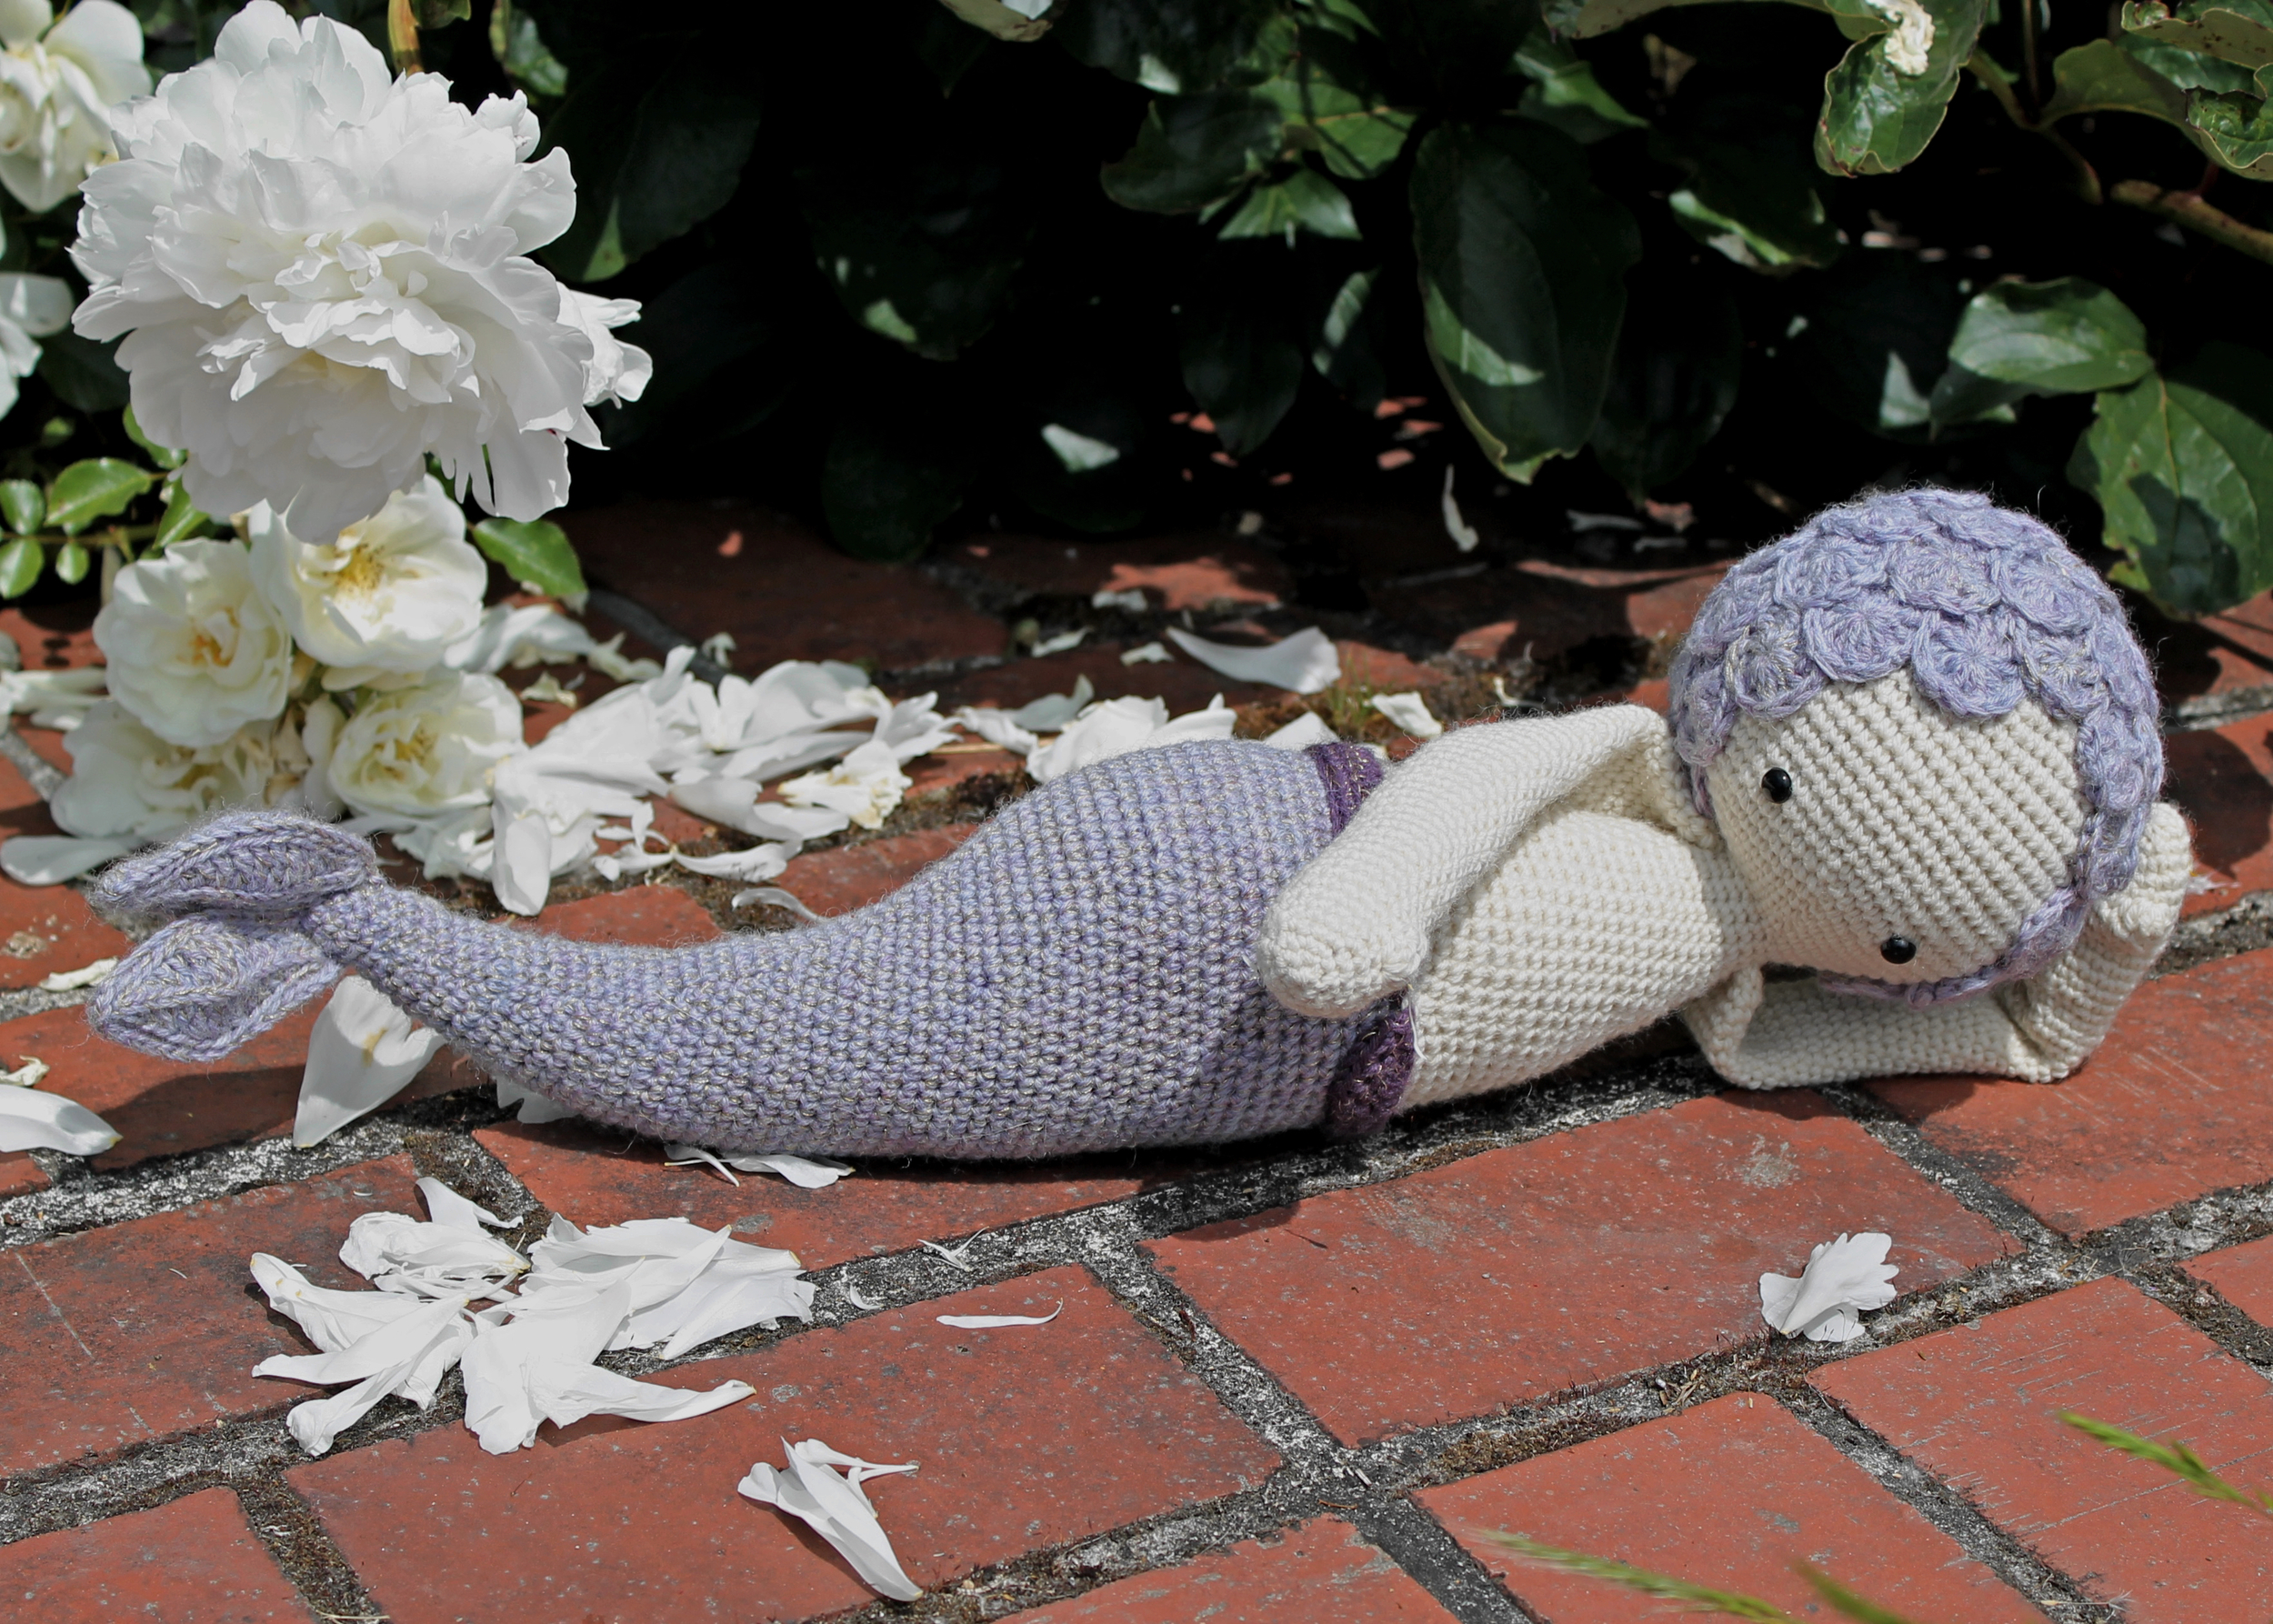 Purple Lalylala Mici the Mermaid laying on bricks